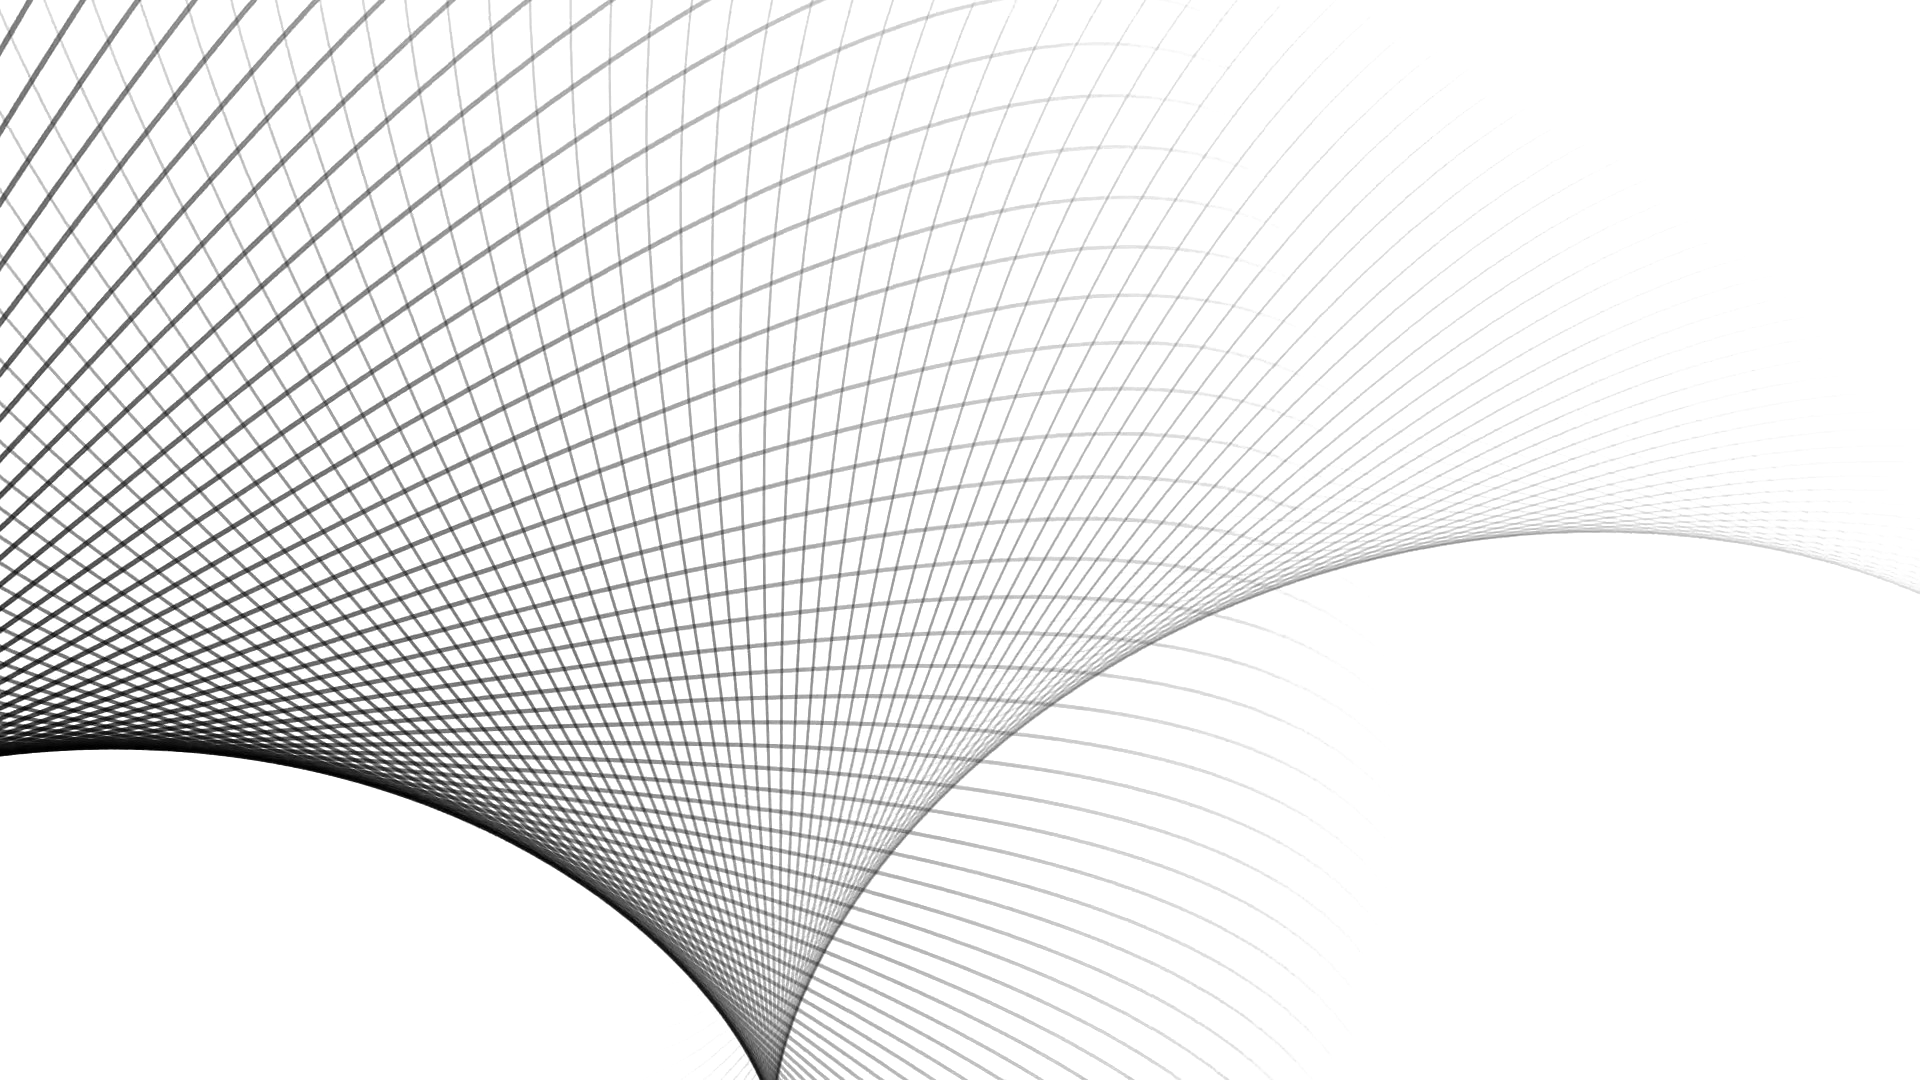 Abstract Lines Background - Abstract Lines Background Hd - HD Wallpaper